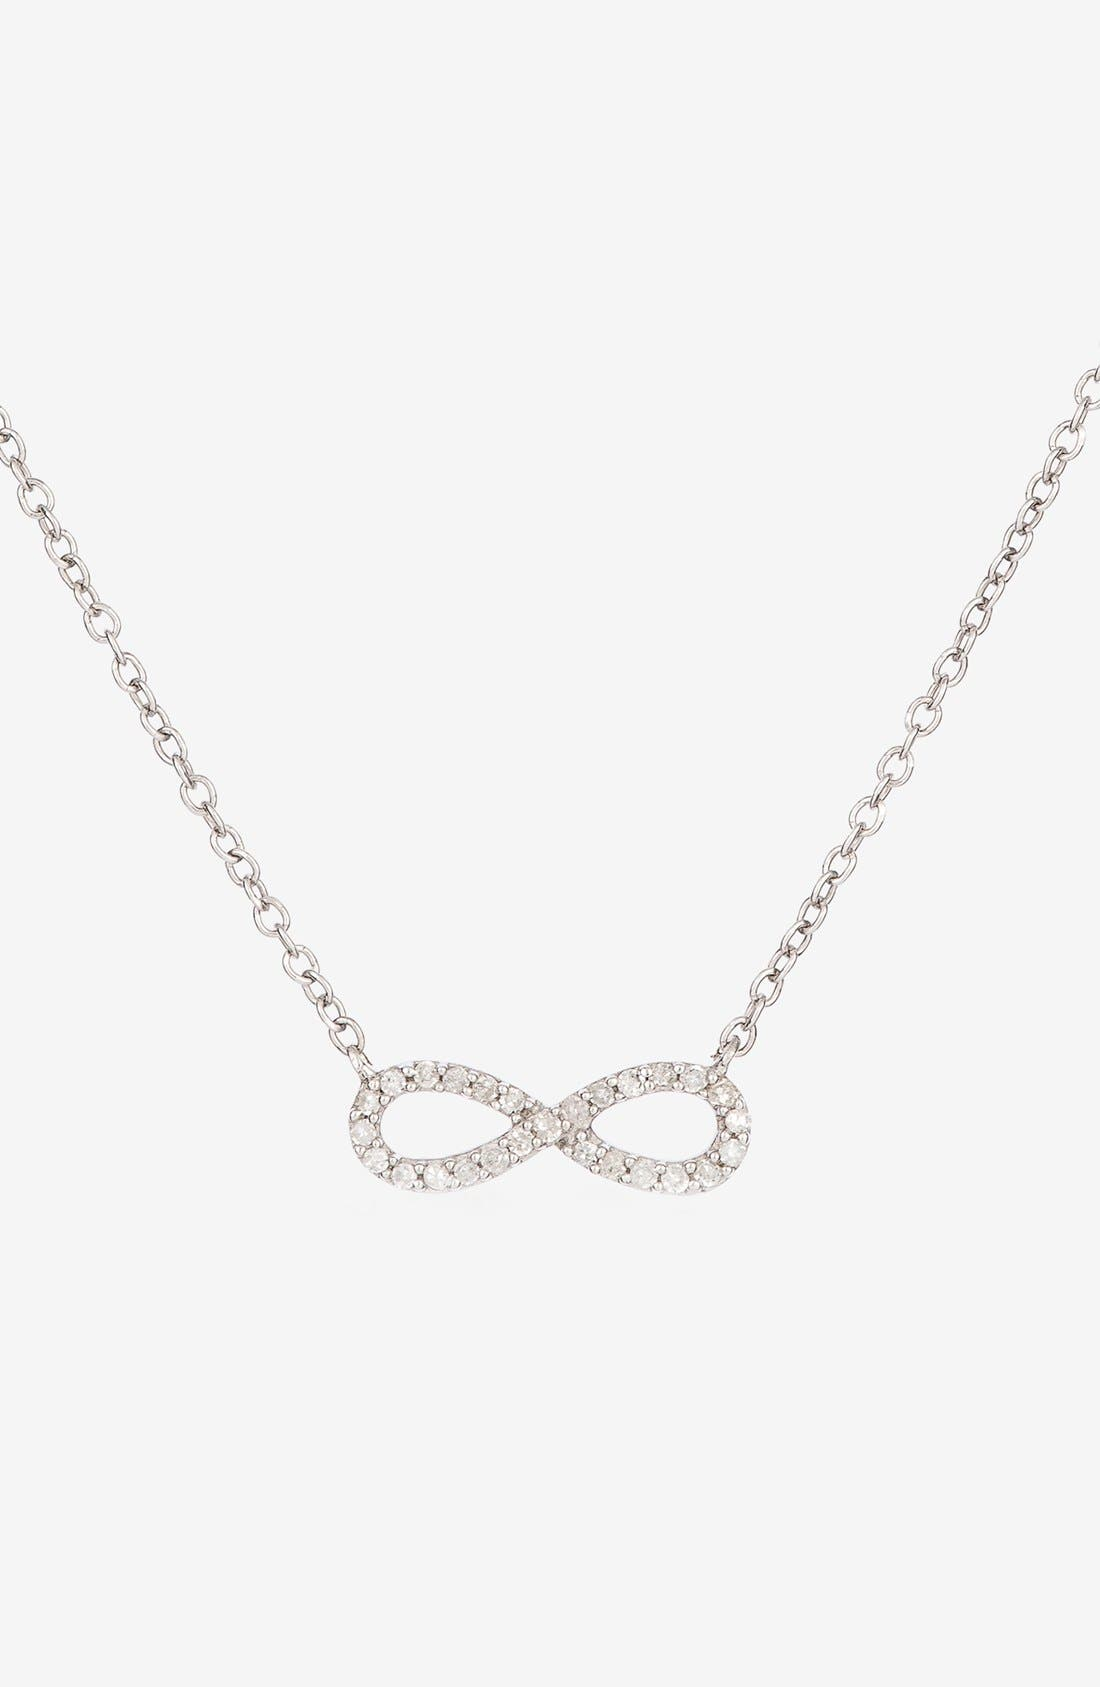 Alternate Image 1 Selected - Adina Reyter Pavé Diamond Infinity Symbol Pendant Necklace (Online Only)